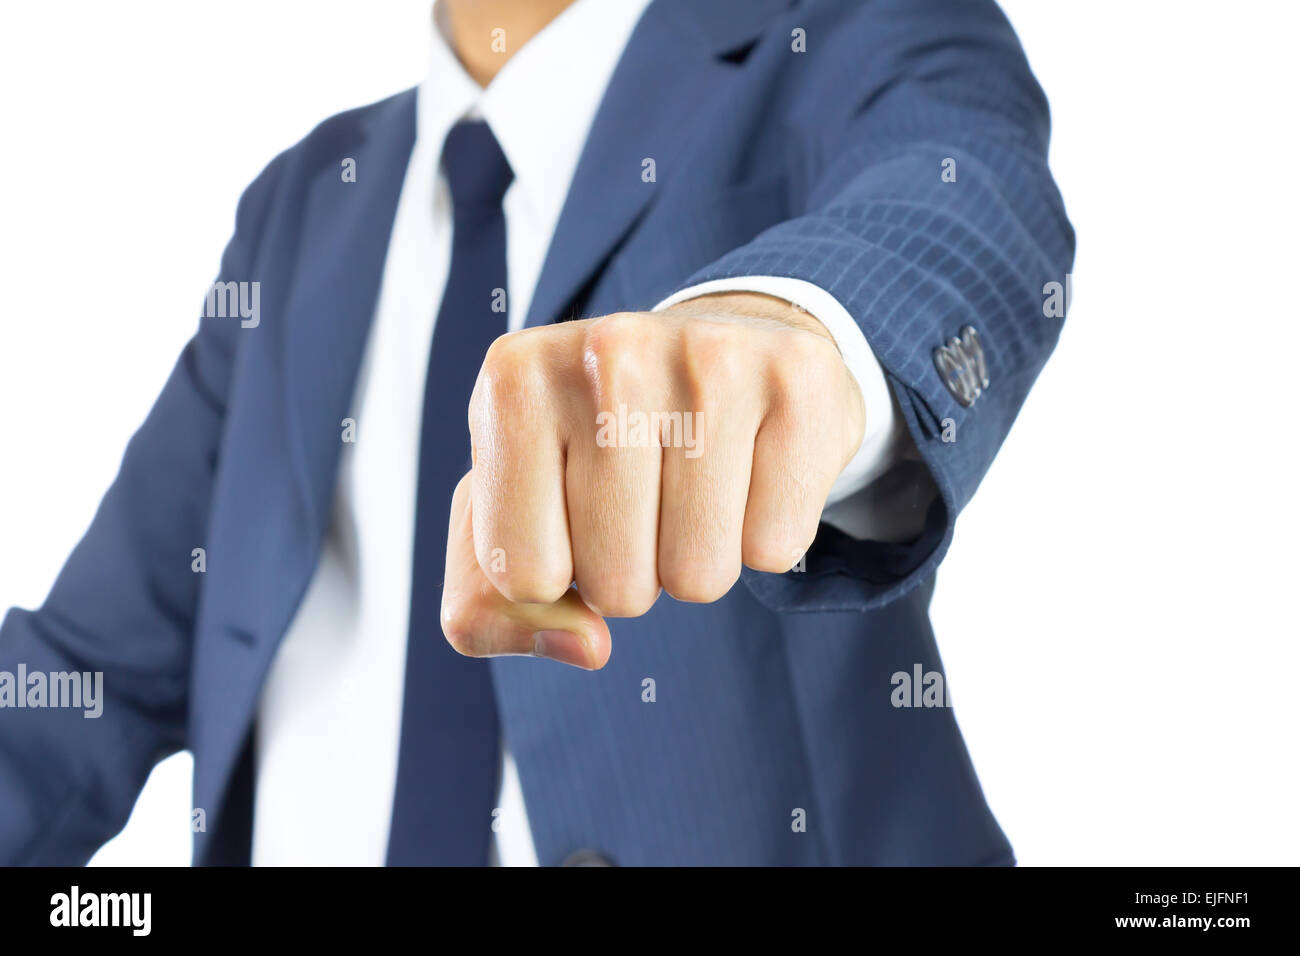 Businessman Fist in Blue Suit Isolated on White Background. Concept about Violence or Strike in Organization - Stock Image